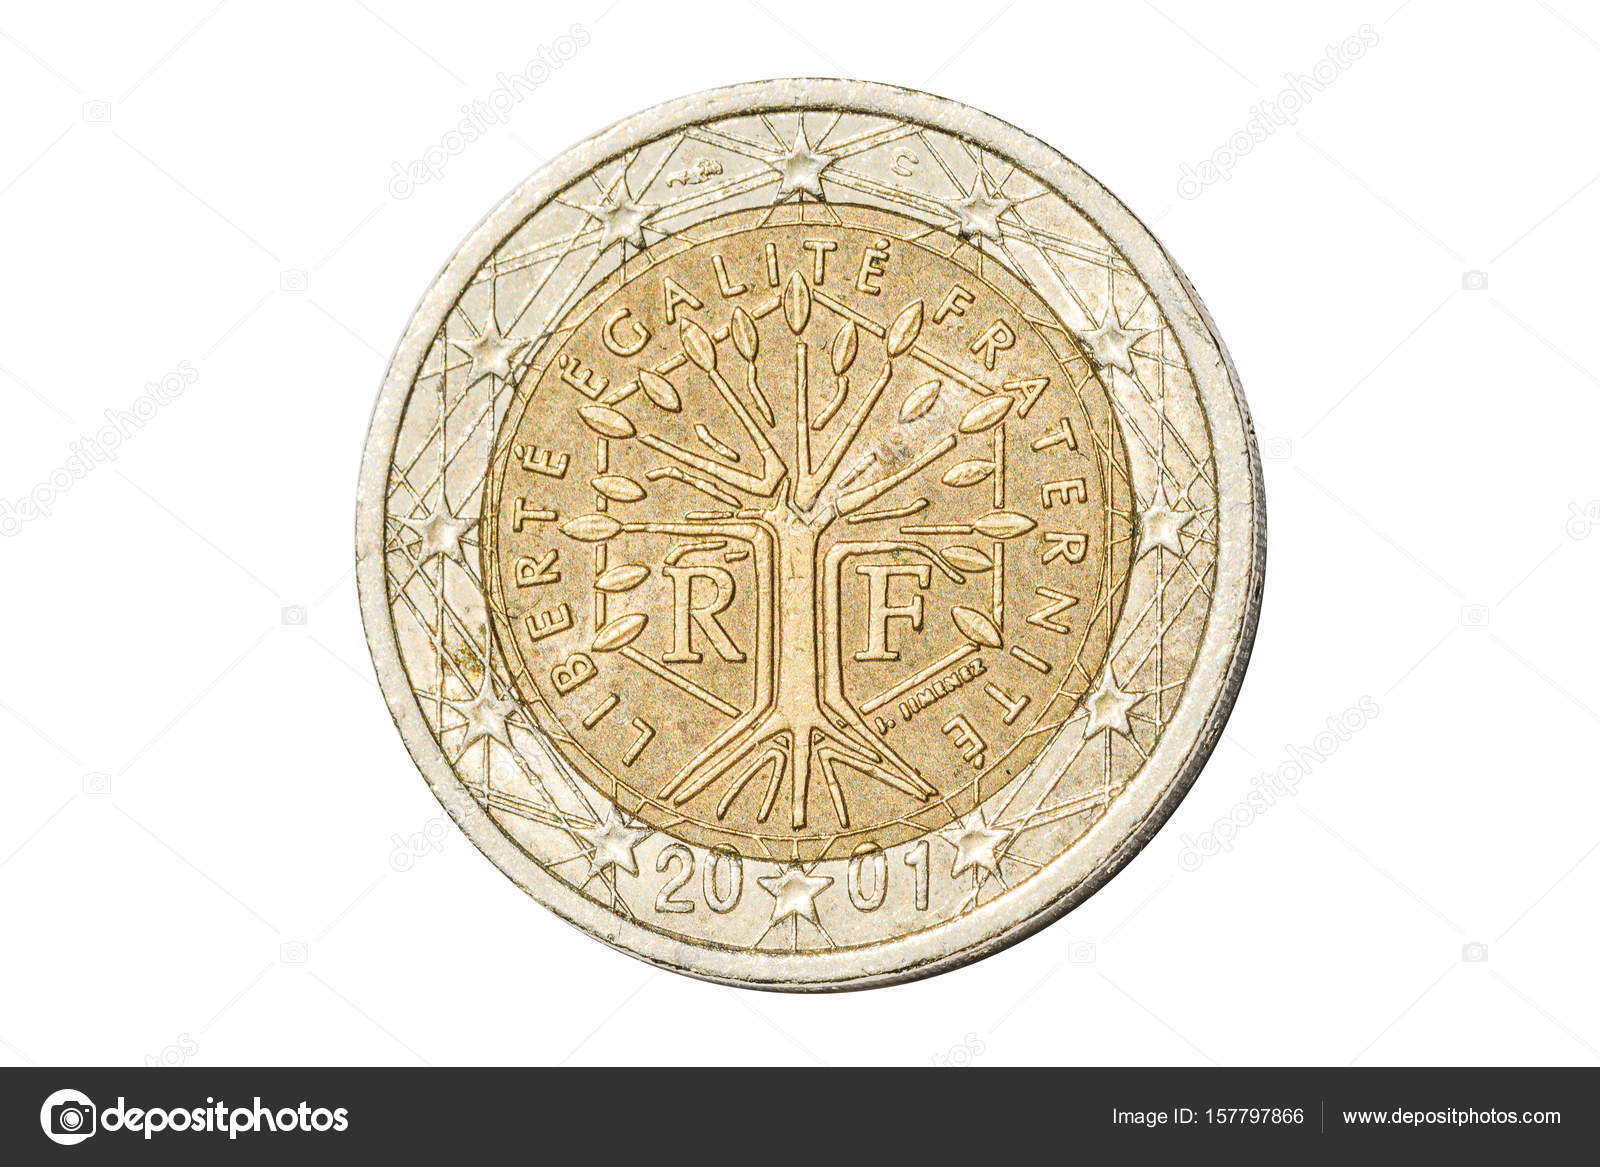 France two euro coin stock photo bennymarty 157797866 french coin of two euro closeup with tree symbol with the motto liberte egalite fraternite of france isolated on white studio background biocorpaavc